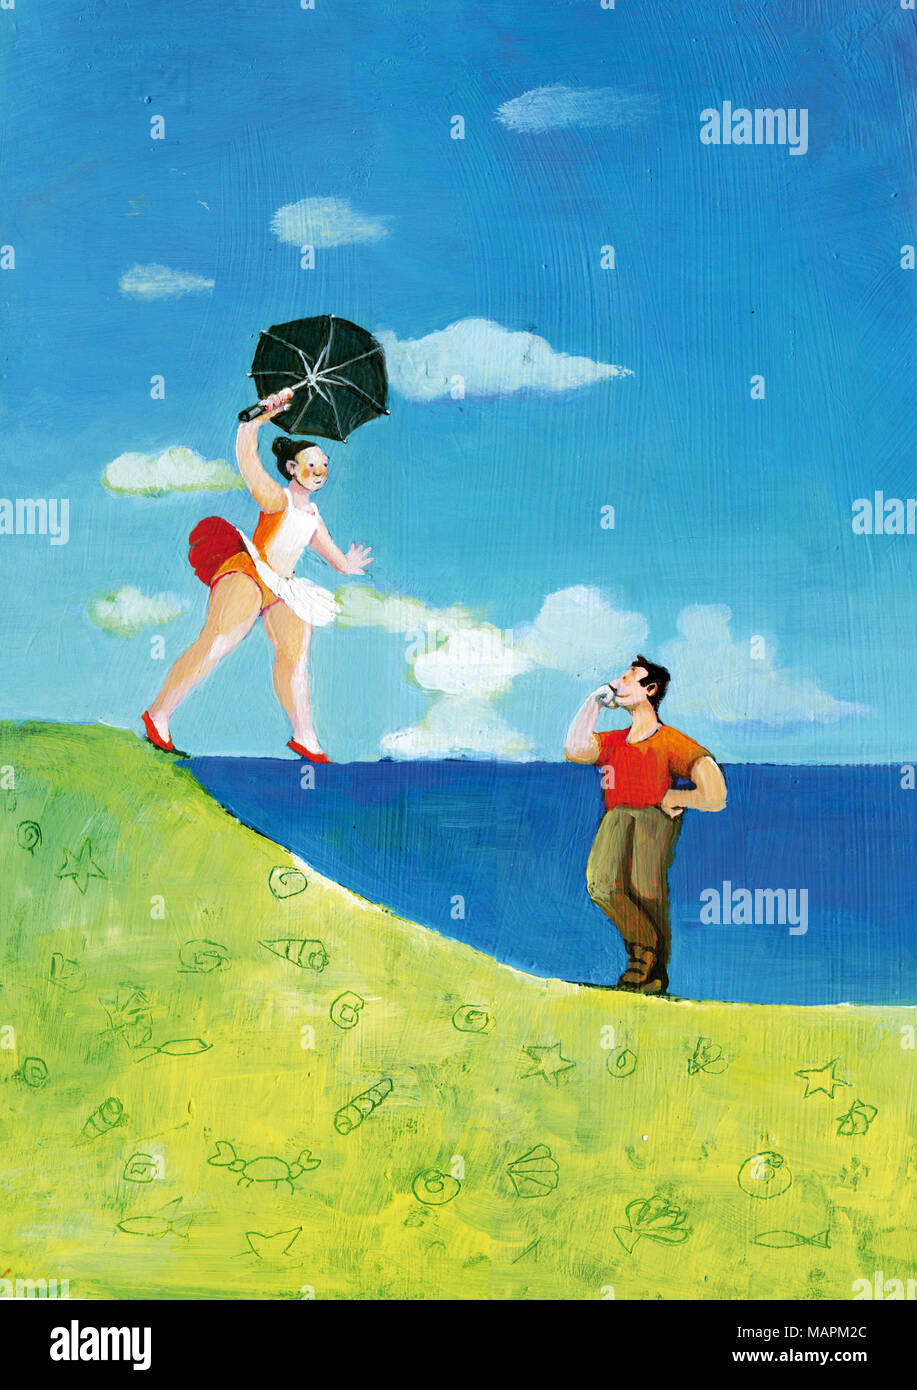 dancer balancing on the horizon of the sea as if it were a balancing rope, boy leaning on the sea like a wall watching her in love - Stock Image